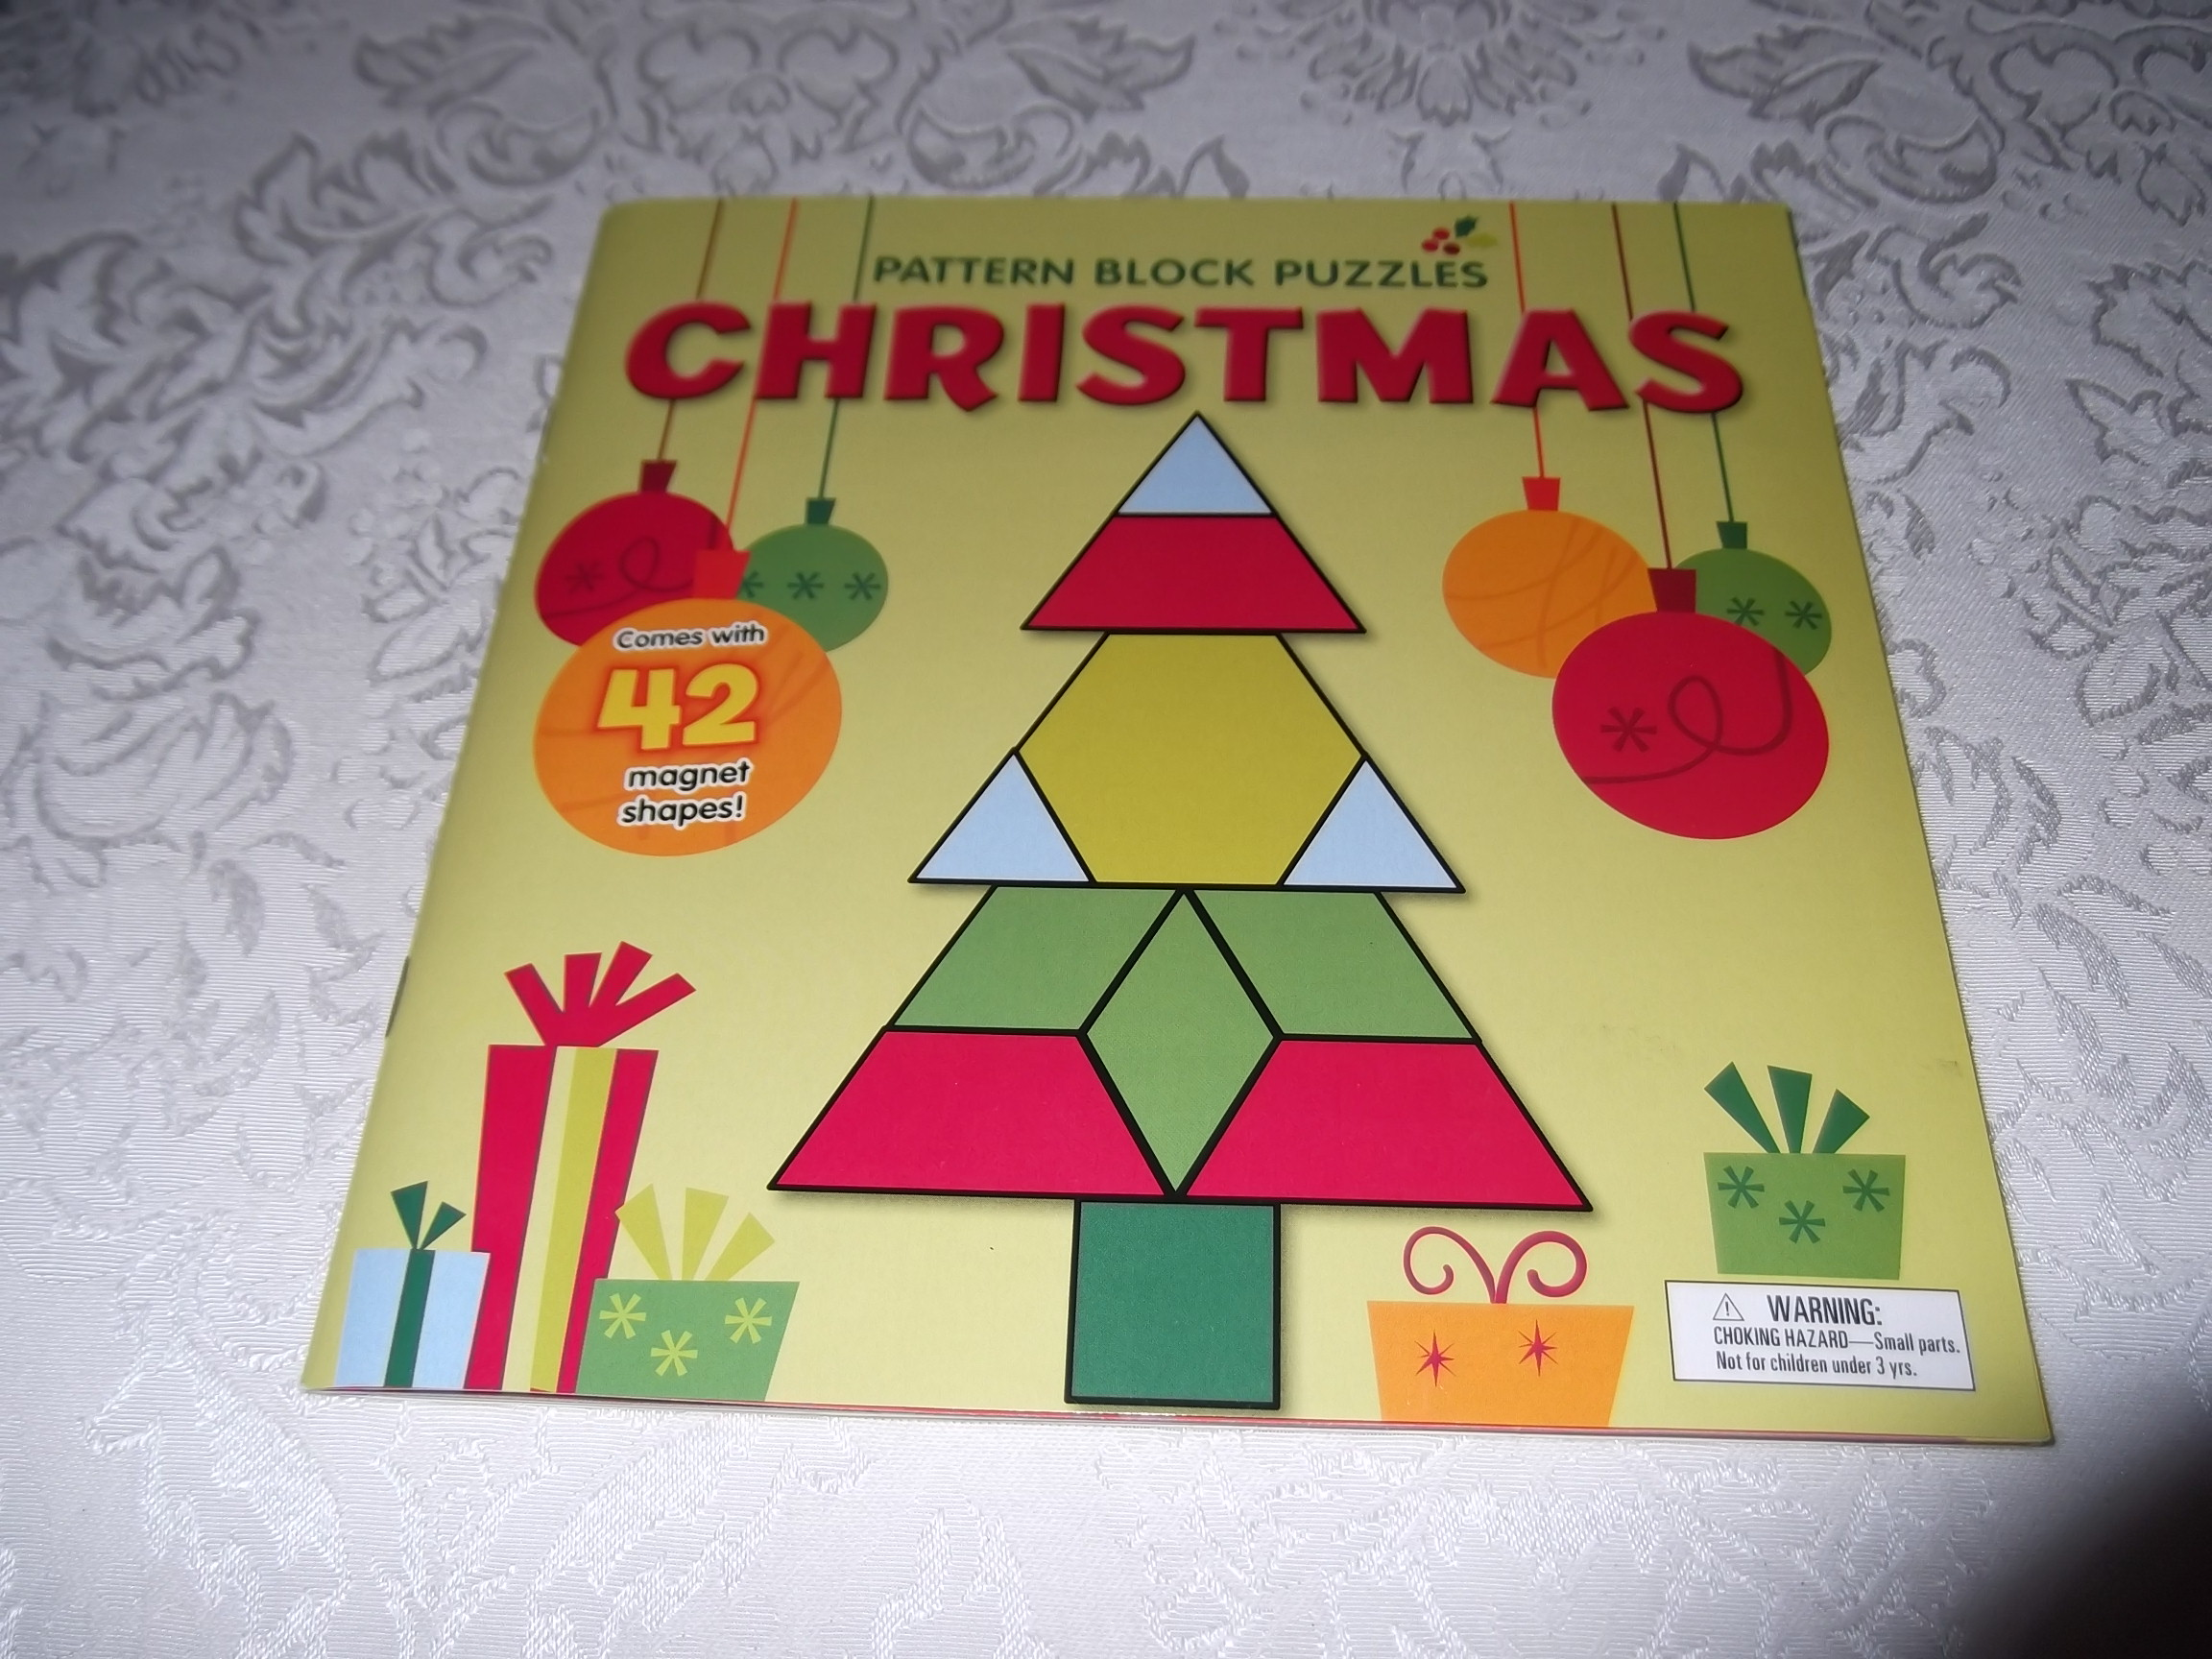 Pattern Block Puzzles Christmas With 42 Magnet Shapes Kris Hirschmann Brand New